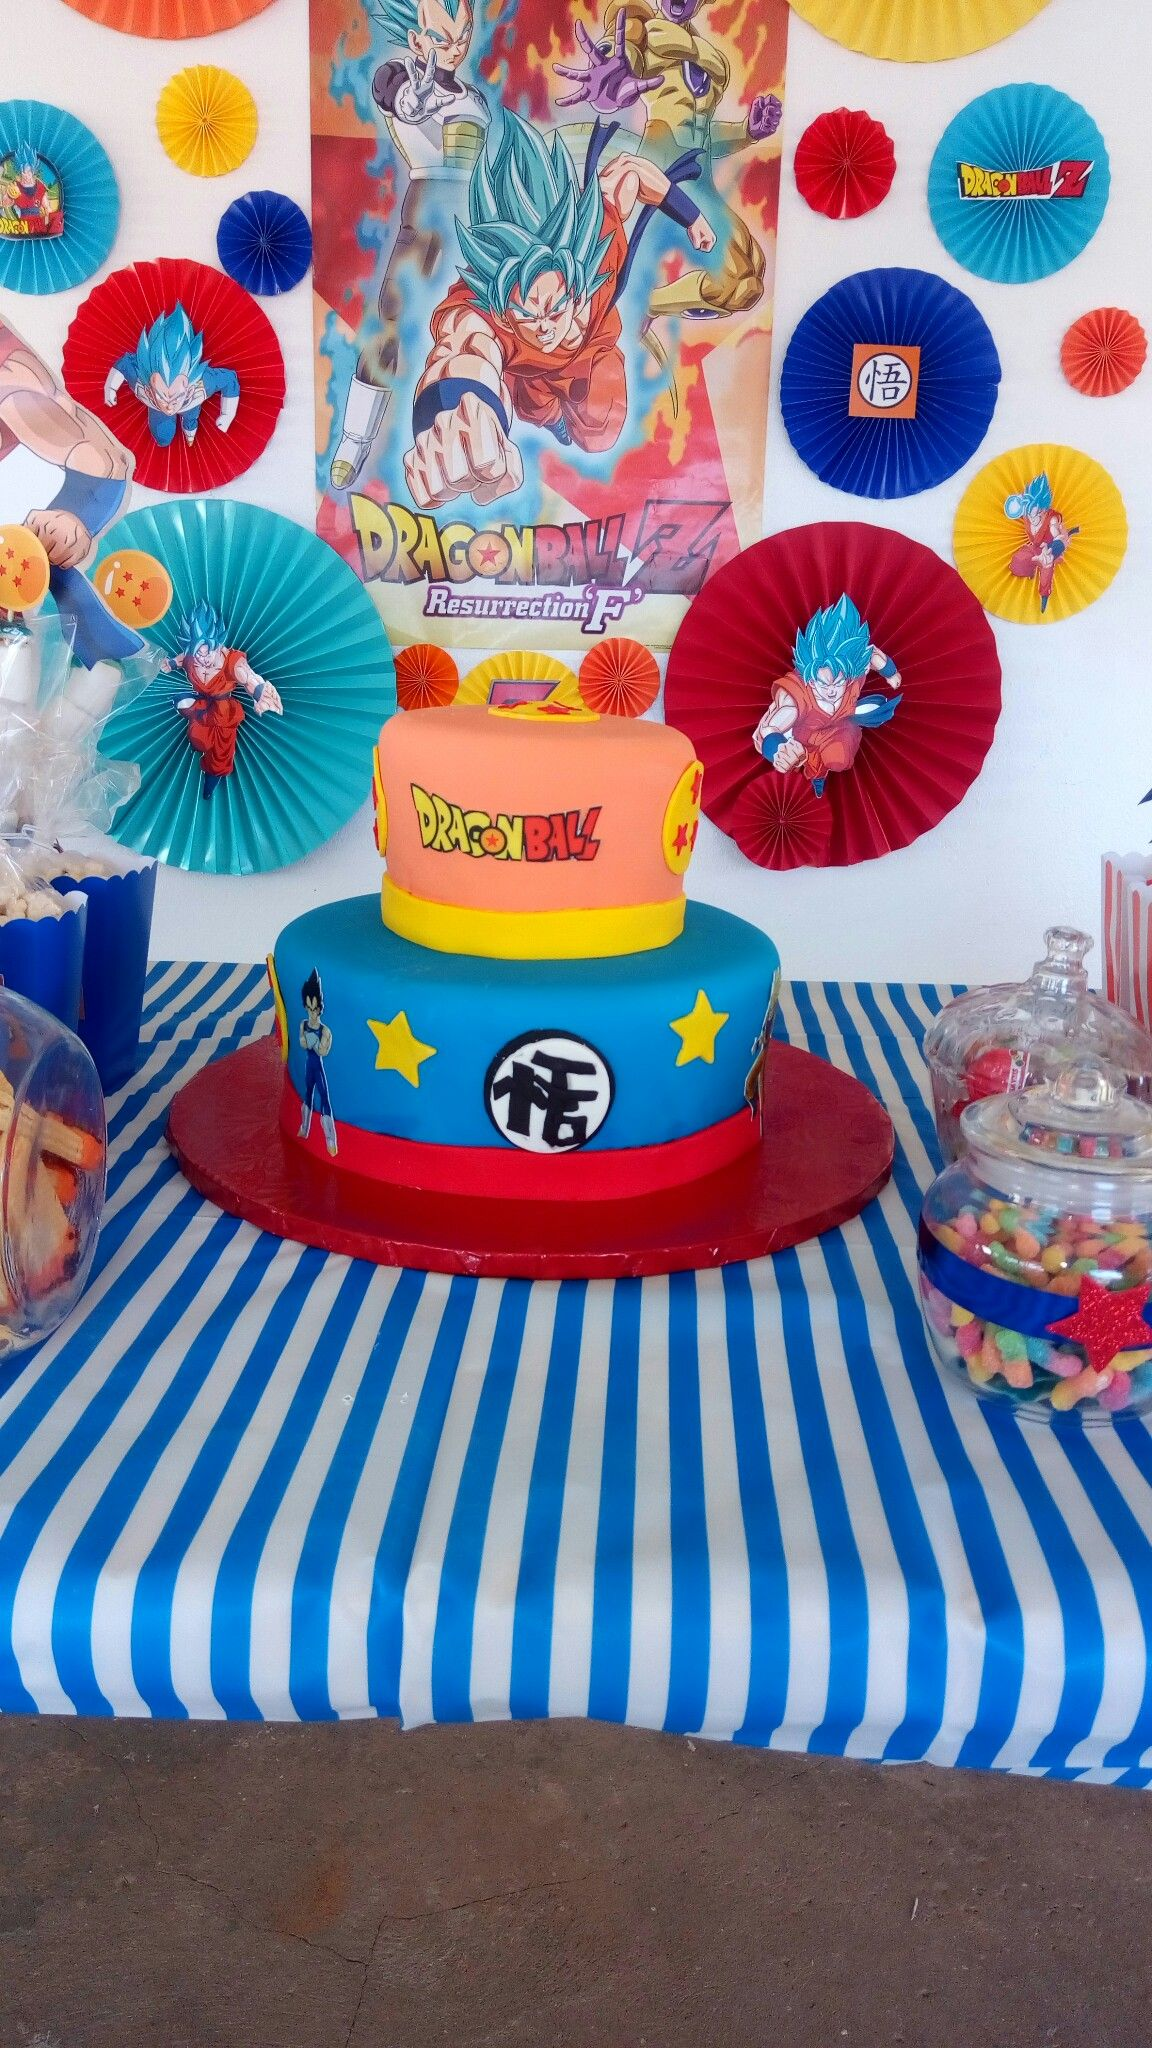 Dragon Ball Z Party Ideas